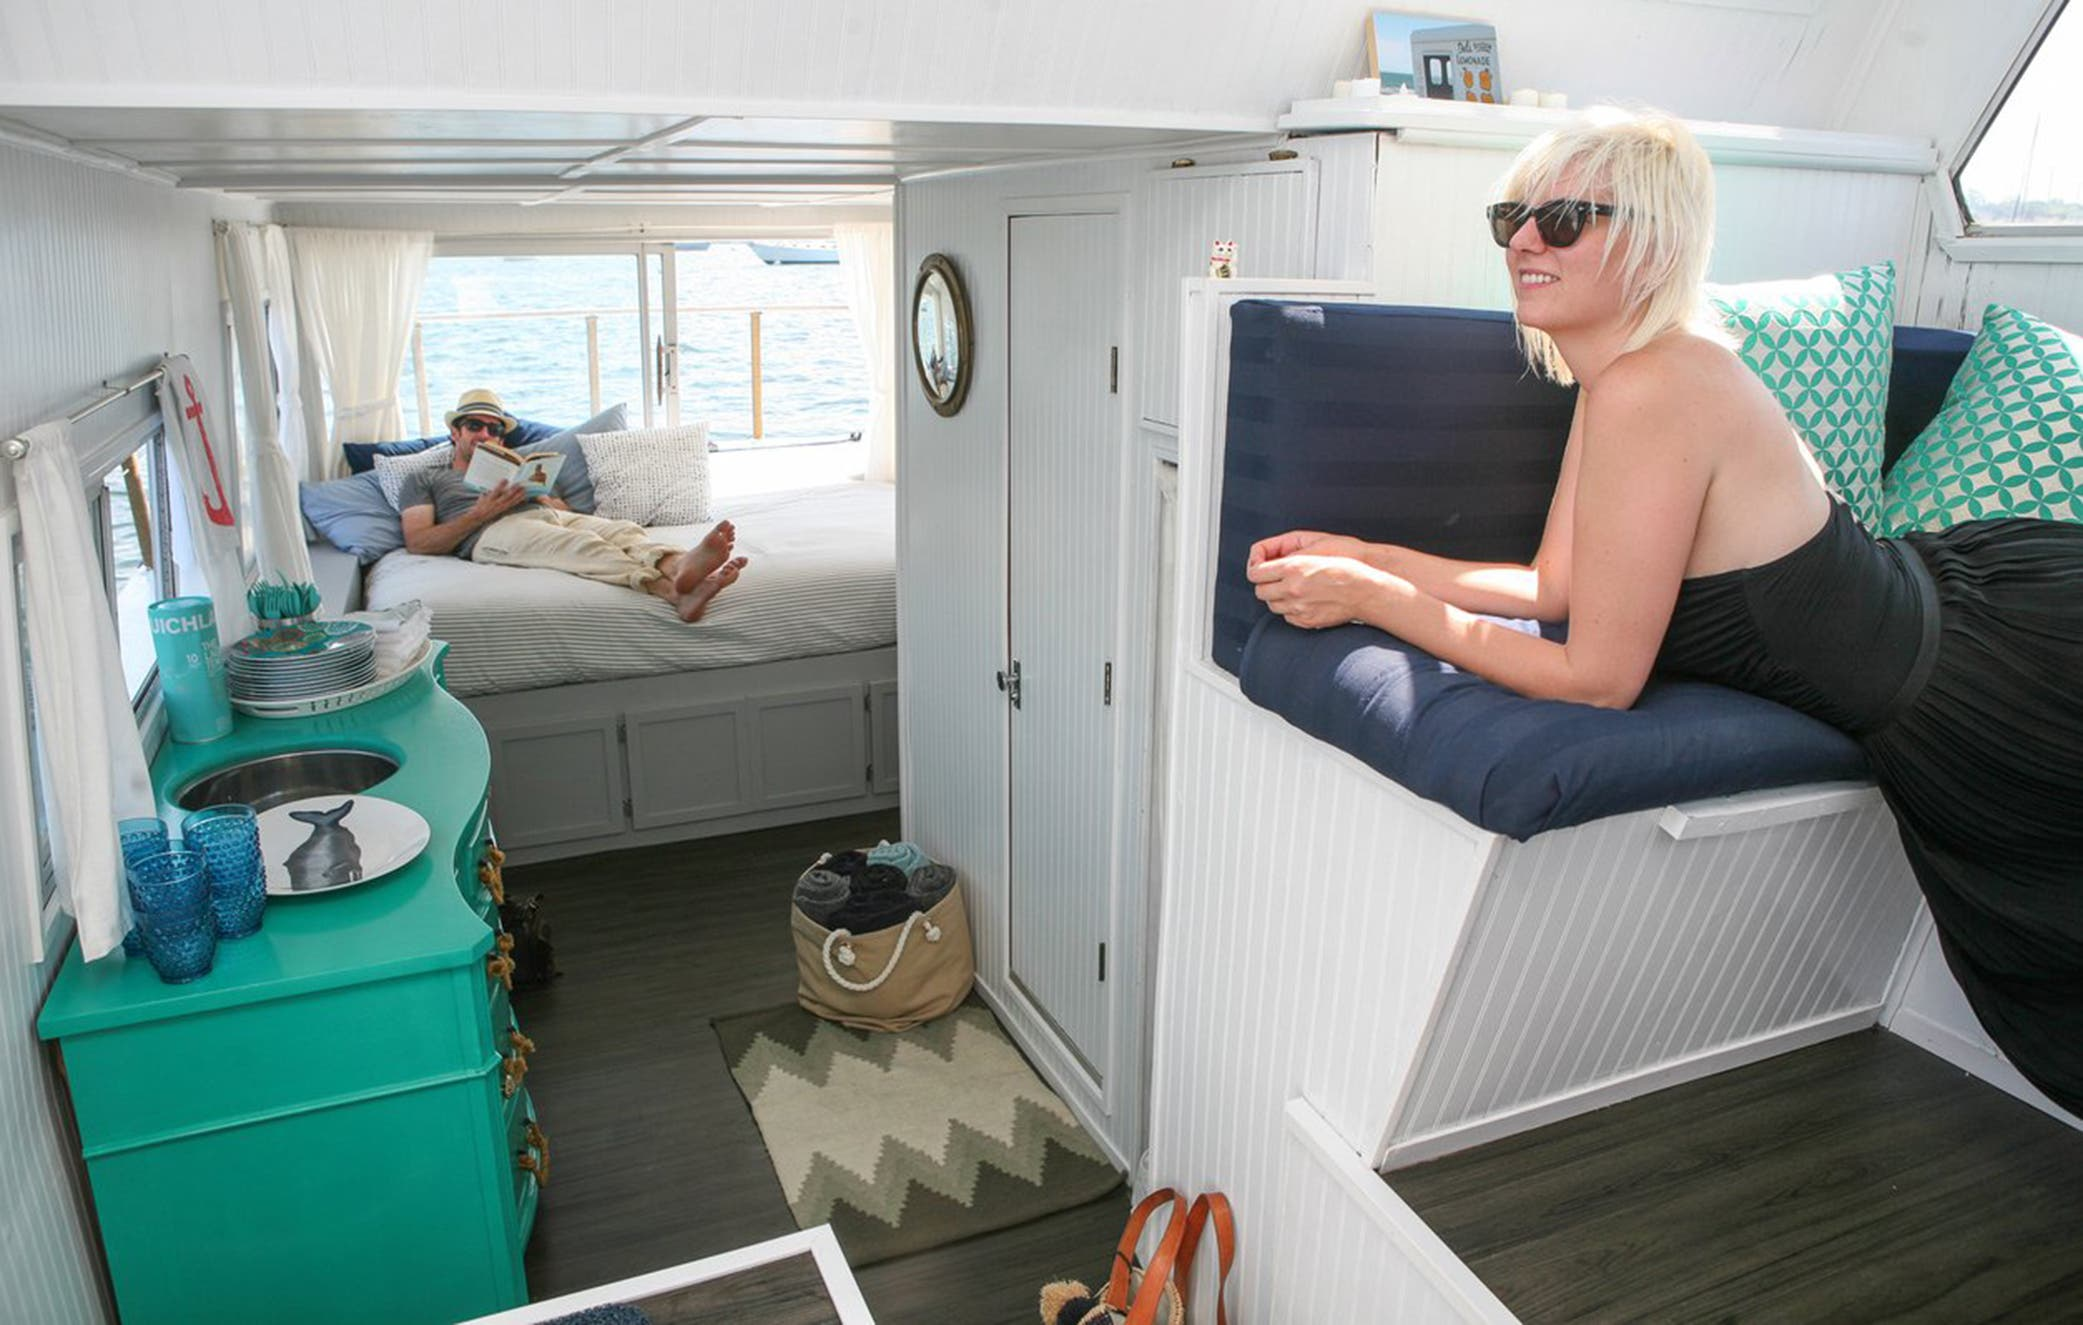 Tiny House Tub Or Boat For Those Of You Without Sea Legs Part 3